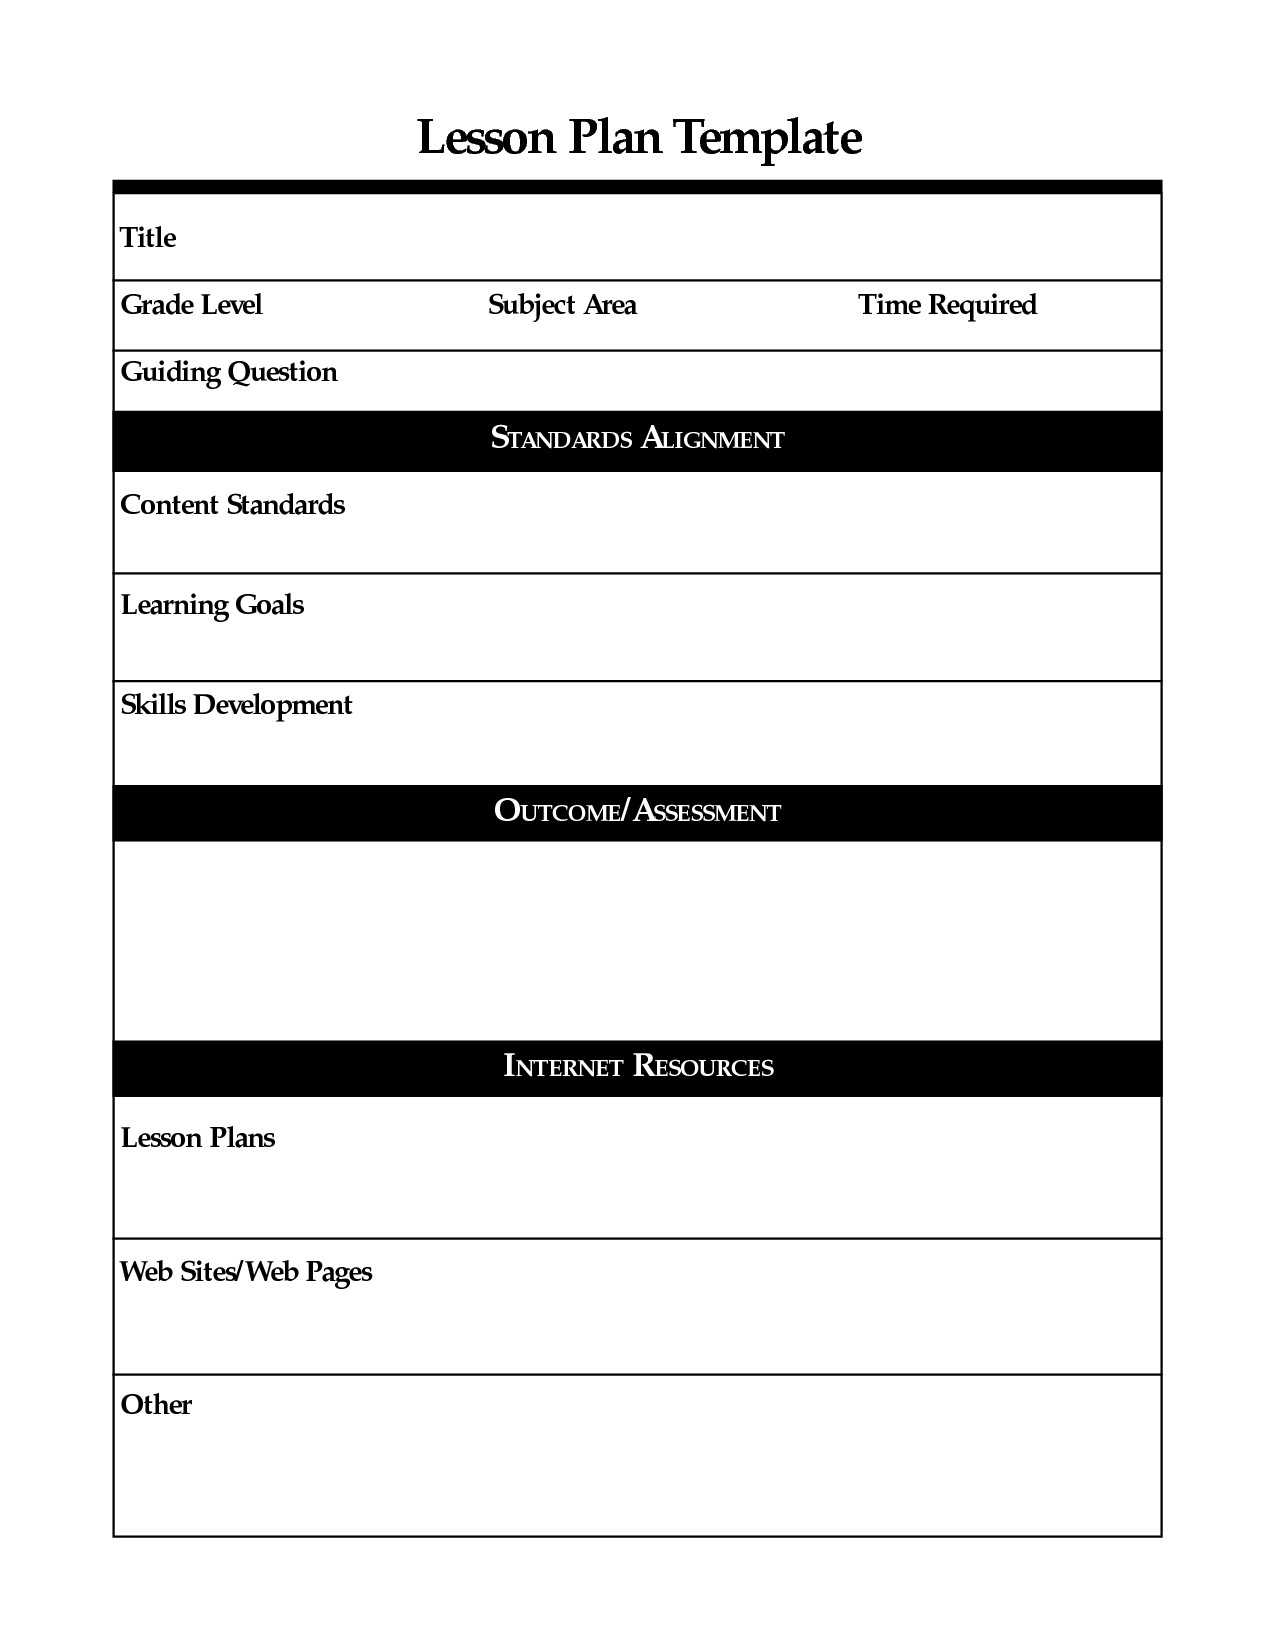 012 Template Ideas Physical Education Lesson Plan Madeline within Madeline Hunter Lesson Plan Blank Template